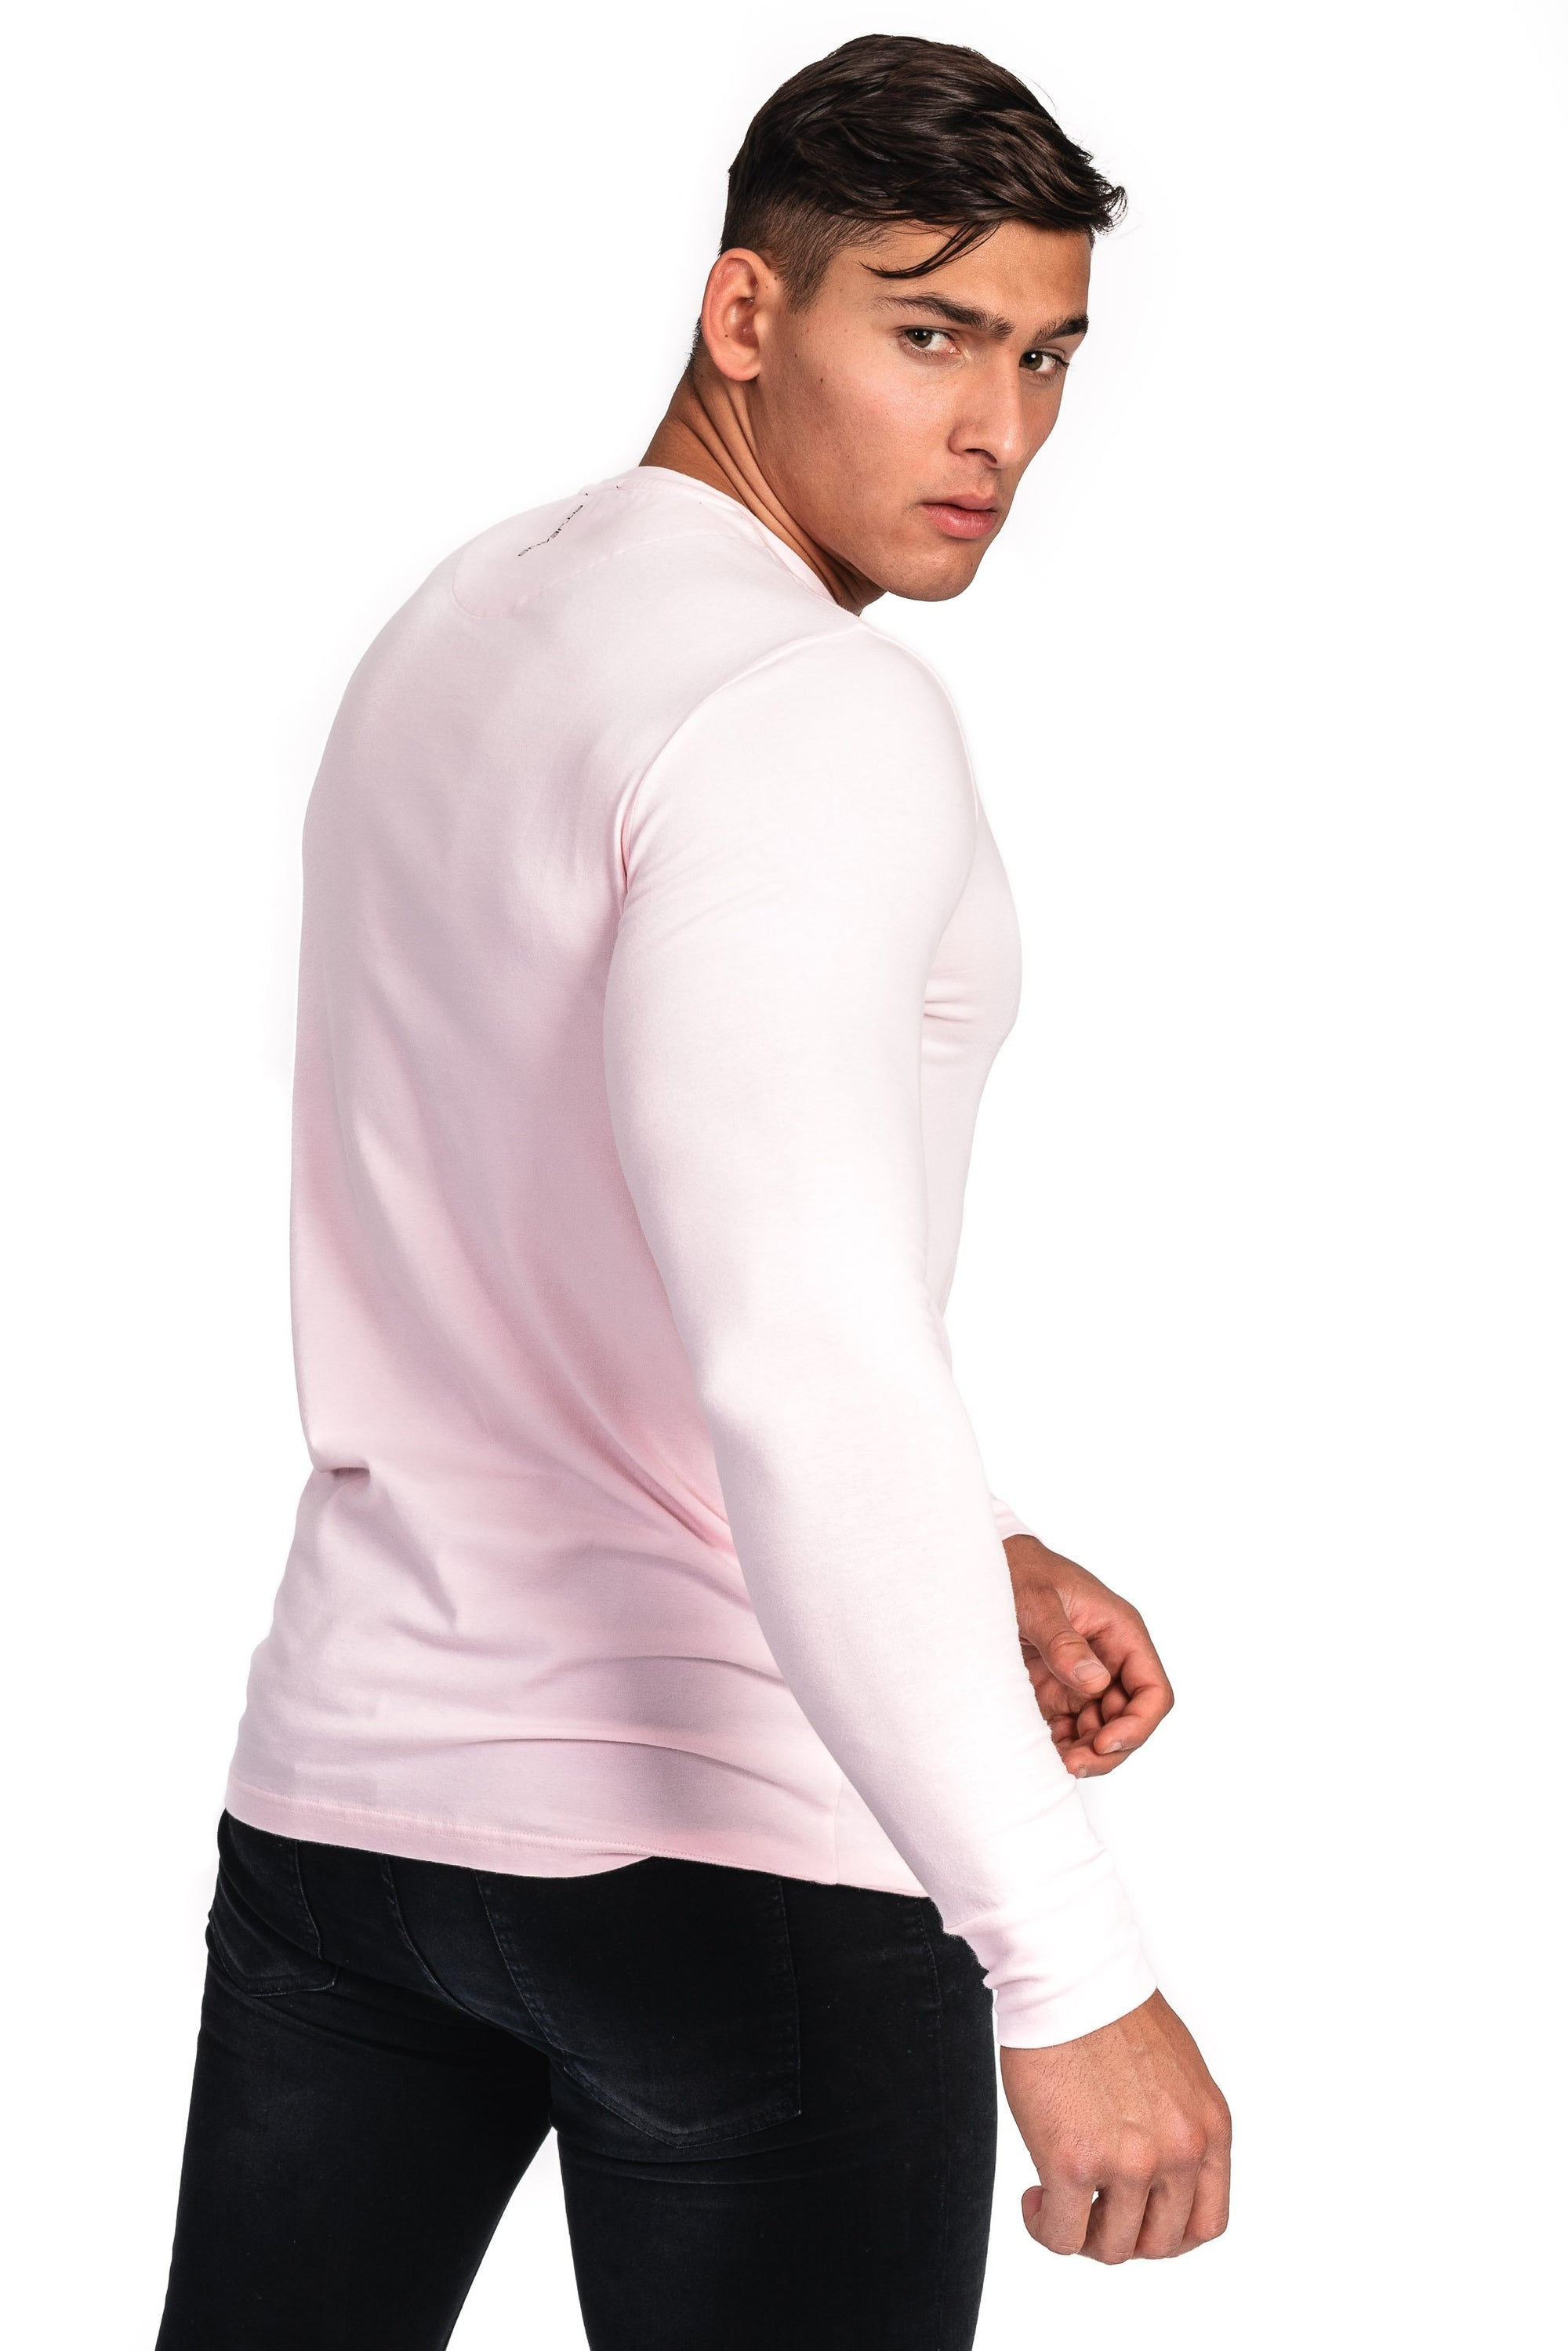 3b6dbd27 Mens Long Sleeve T Shirt - Vintage Pink - Fitjeans Worldwide